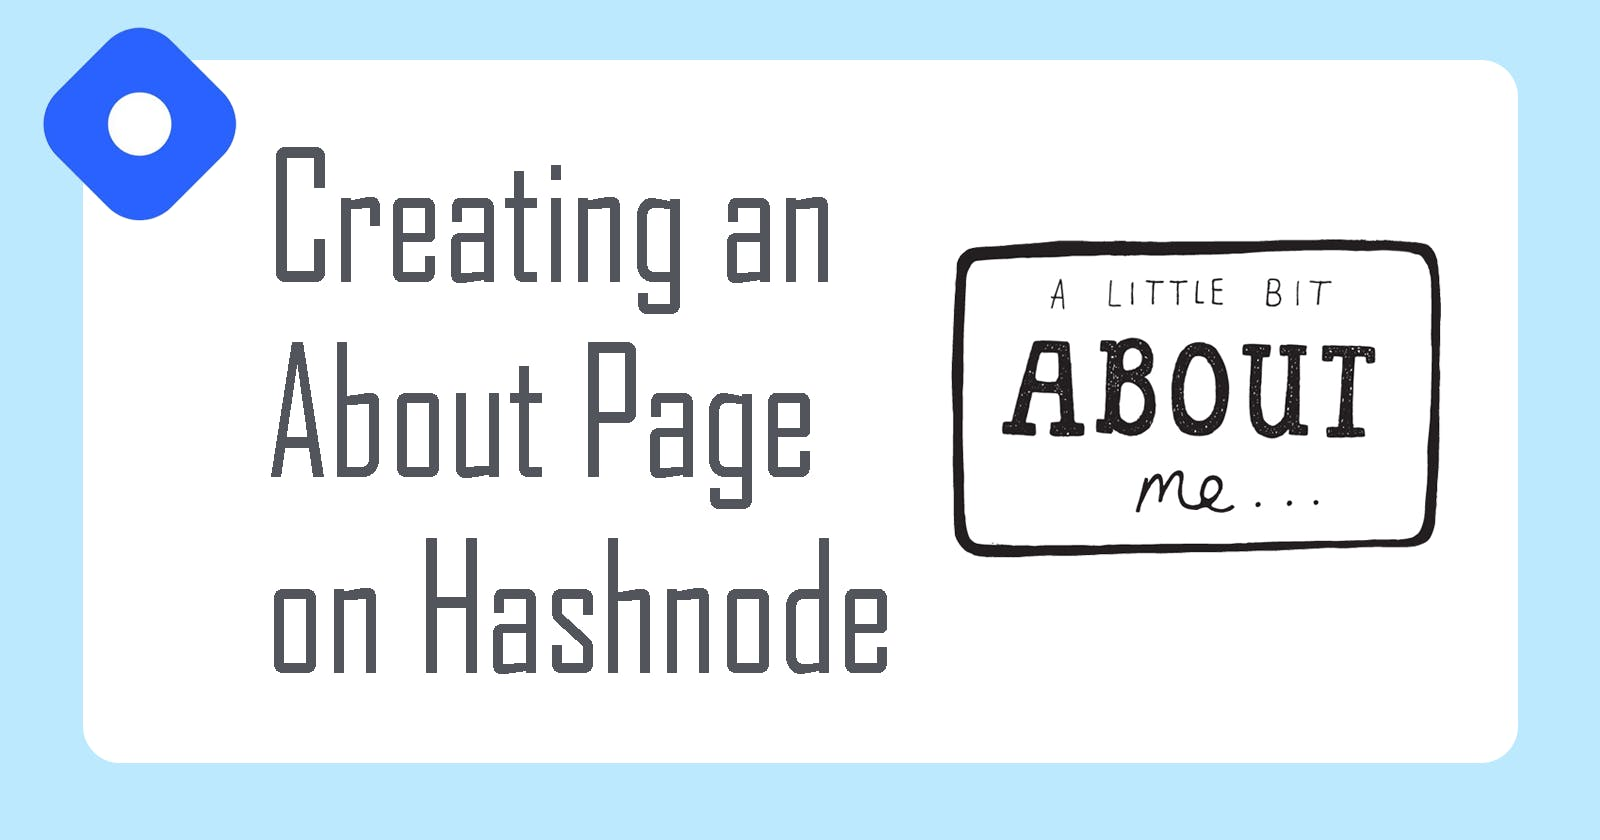 Creating an About page on your Hashnode Blog